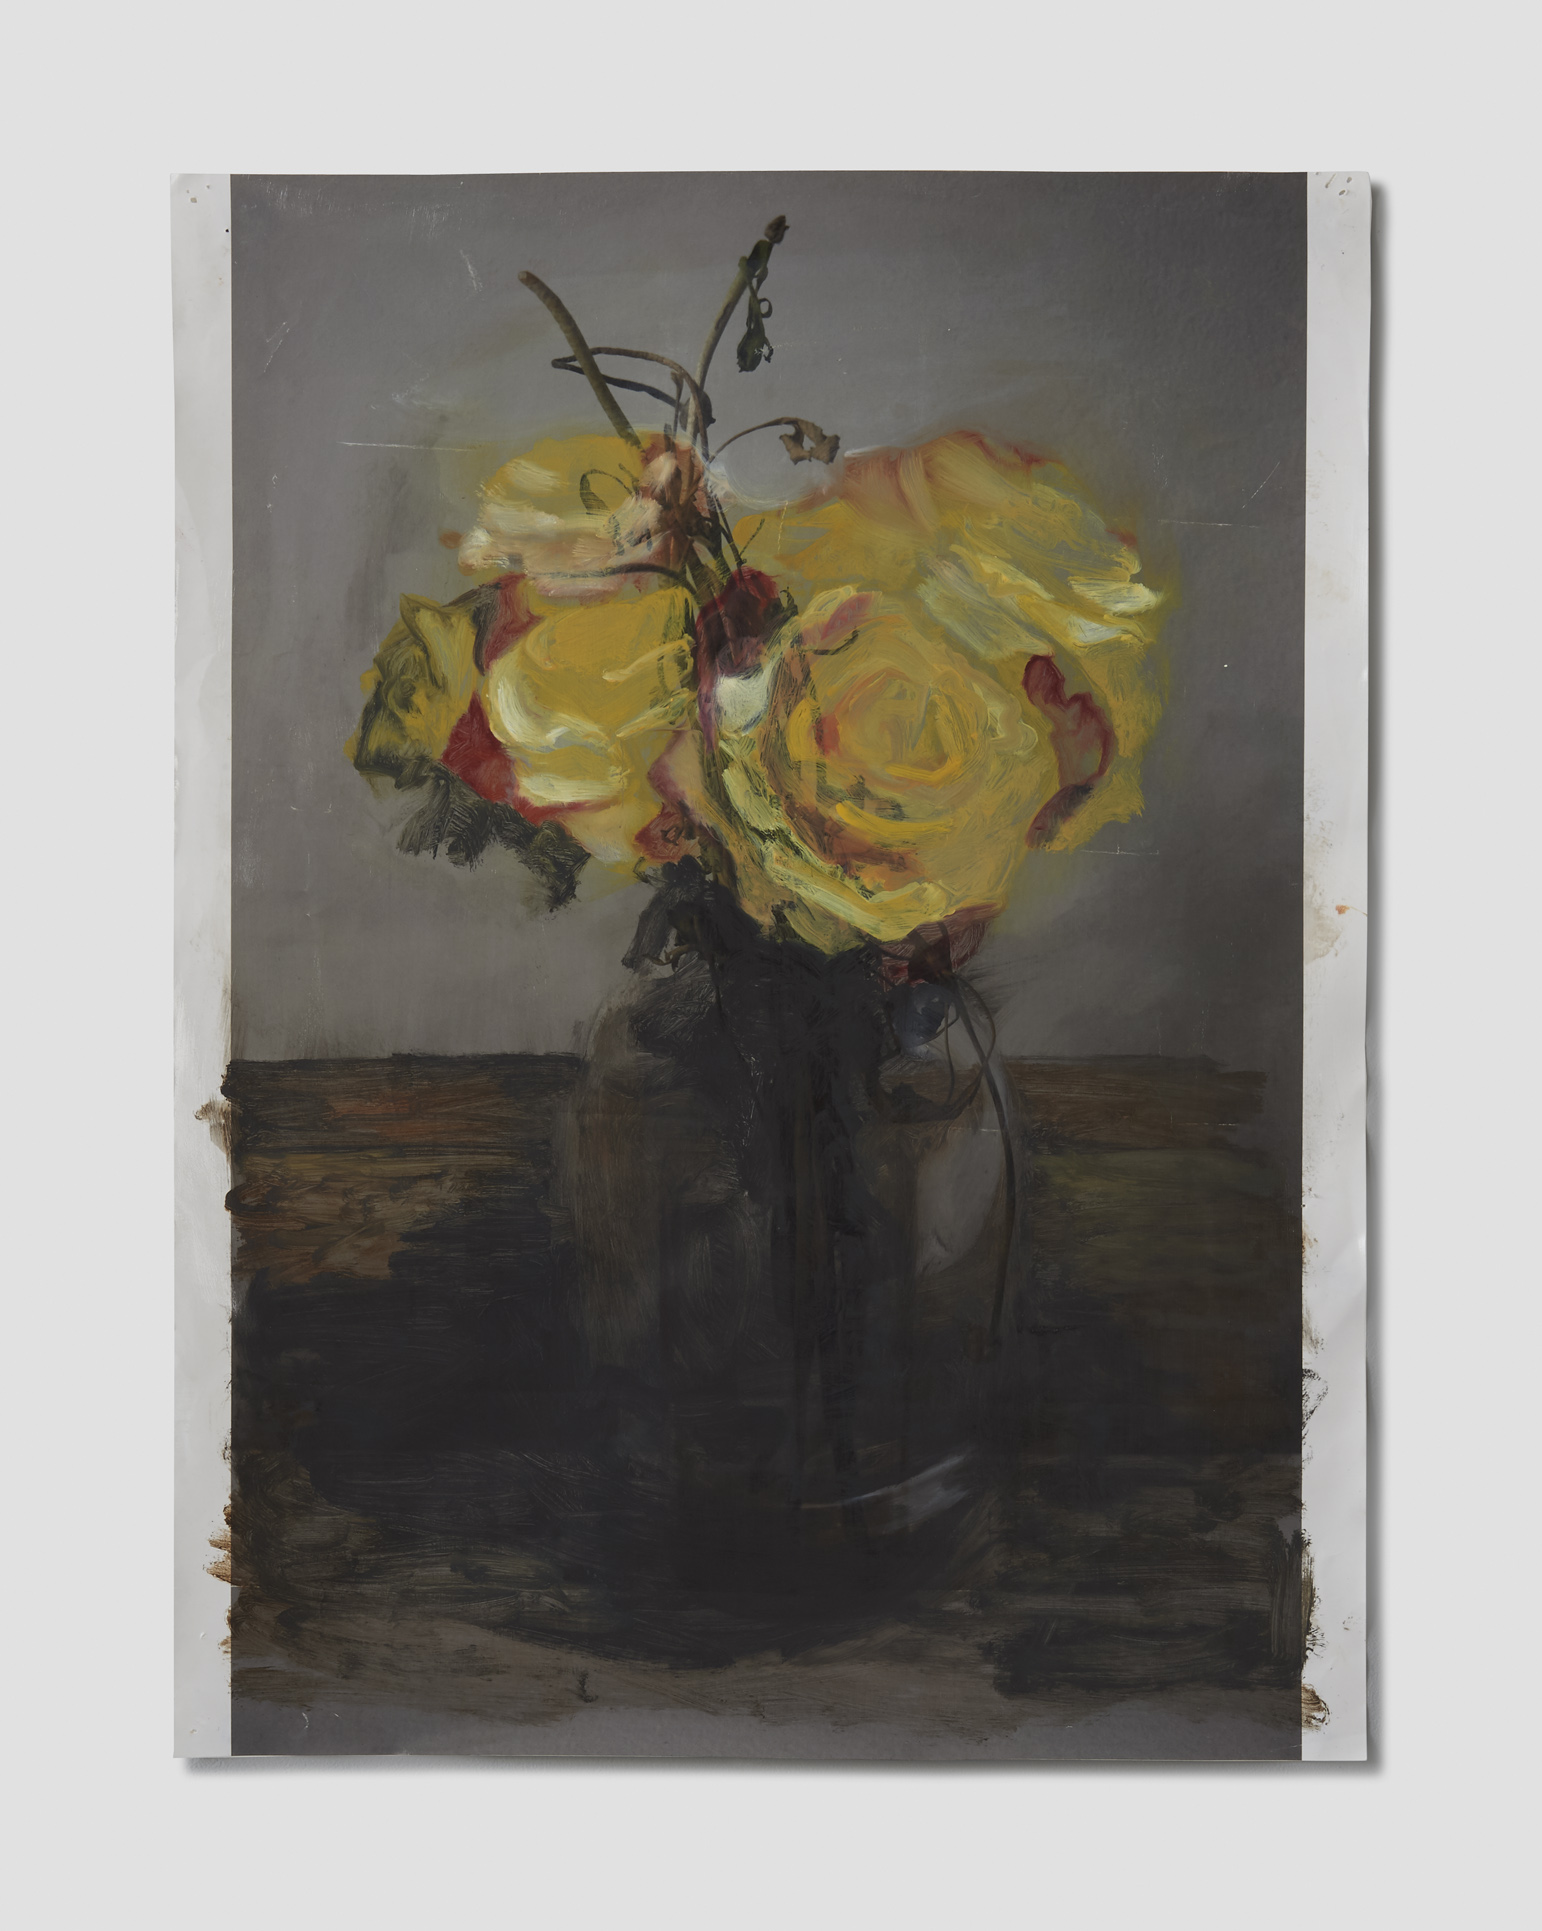 New Flowers Over Old Flowers    Oil on archival inkjet print  20x16